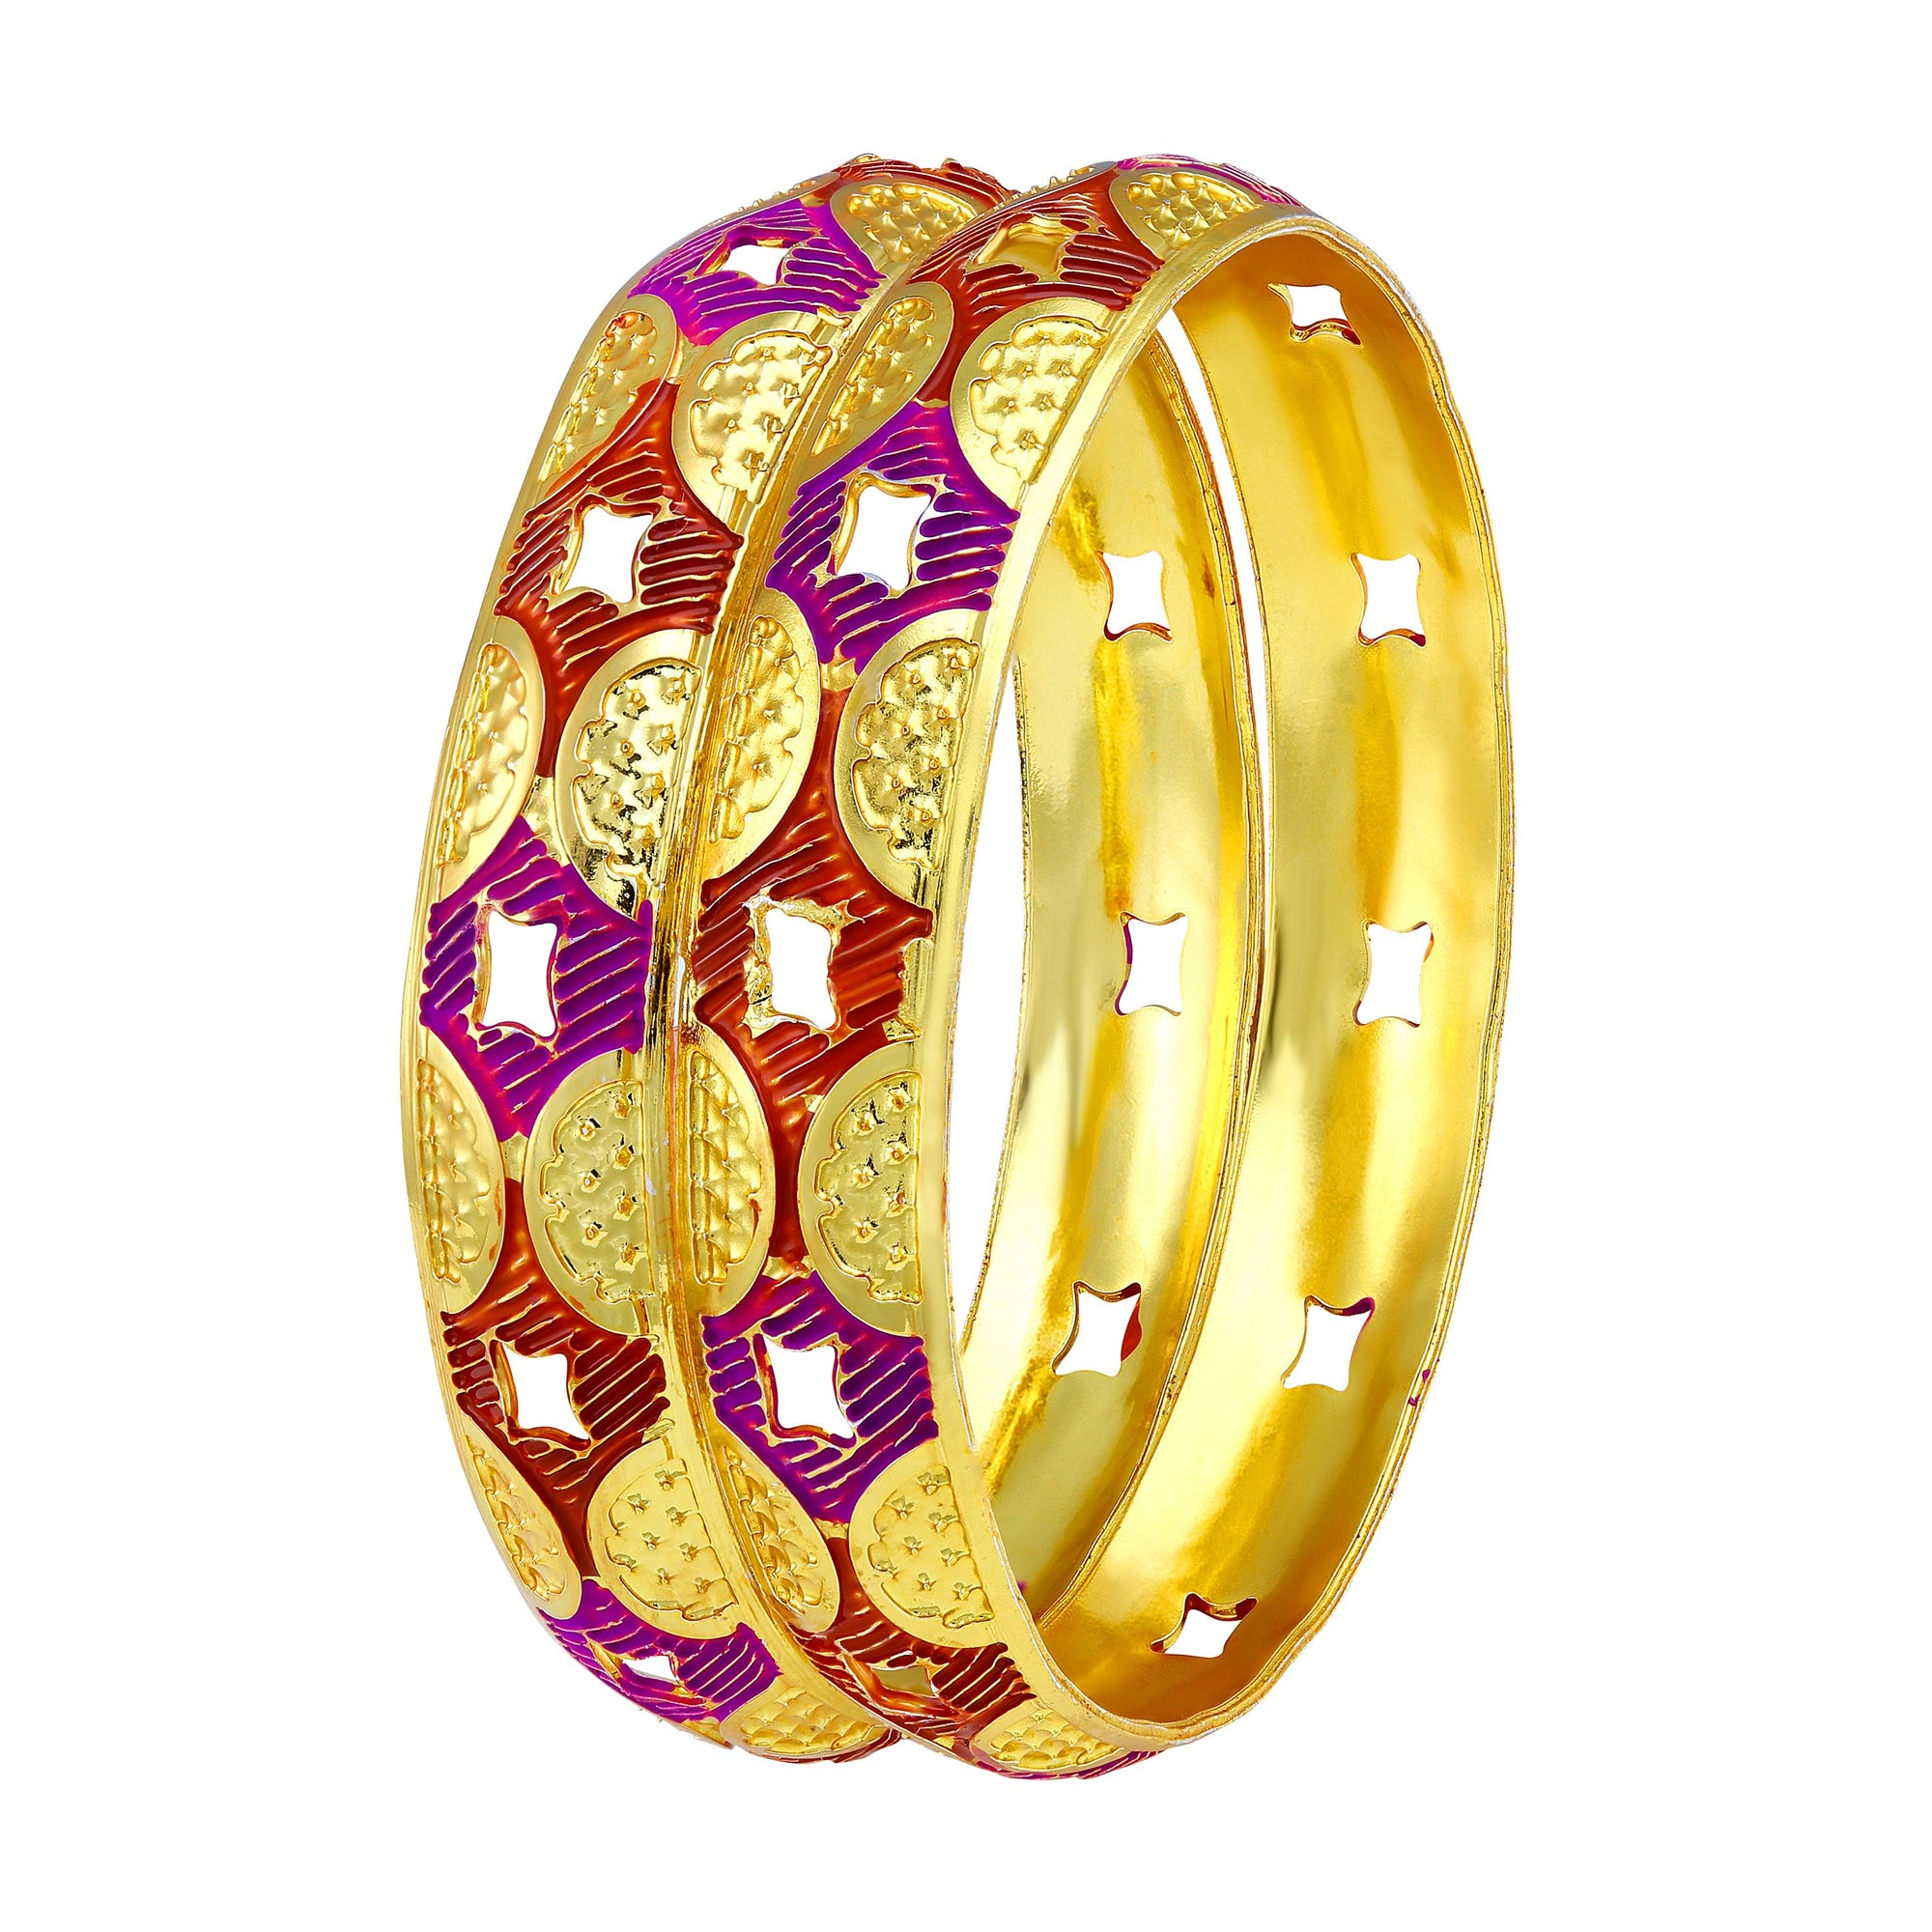 Asmitta Jewellery Gold Enamel Bangle  -BG169